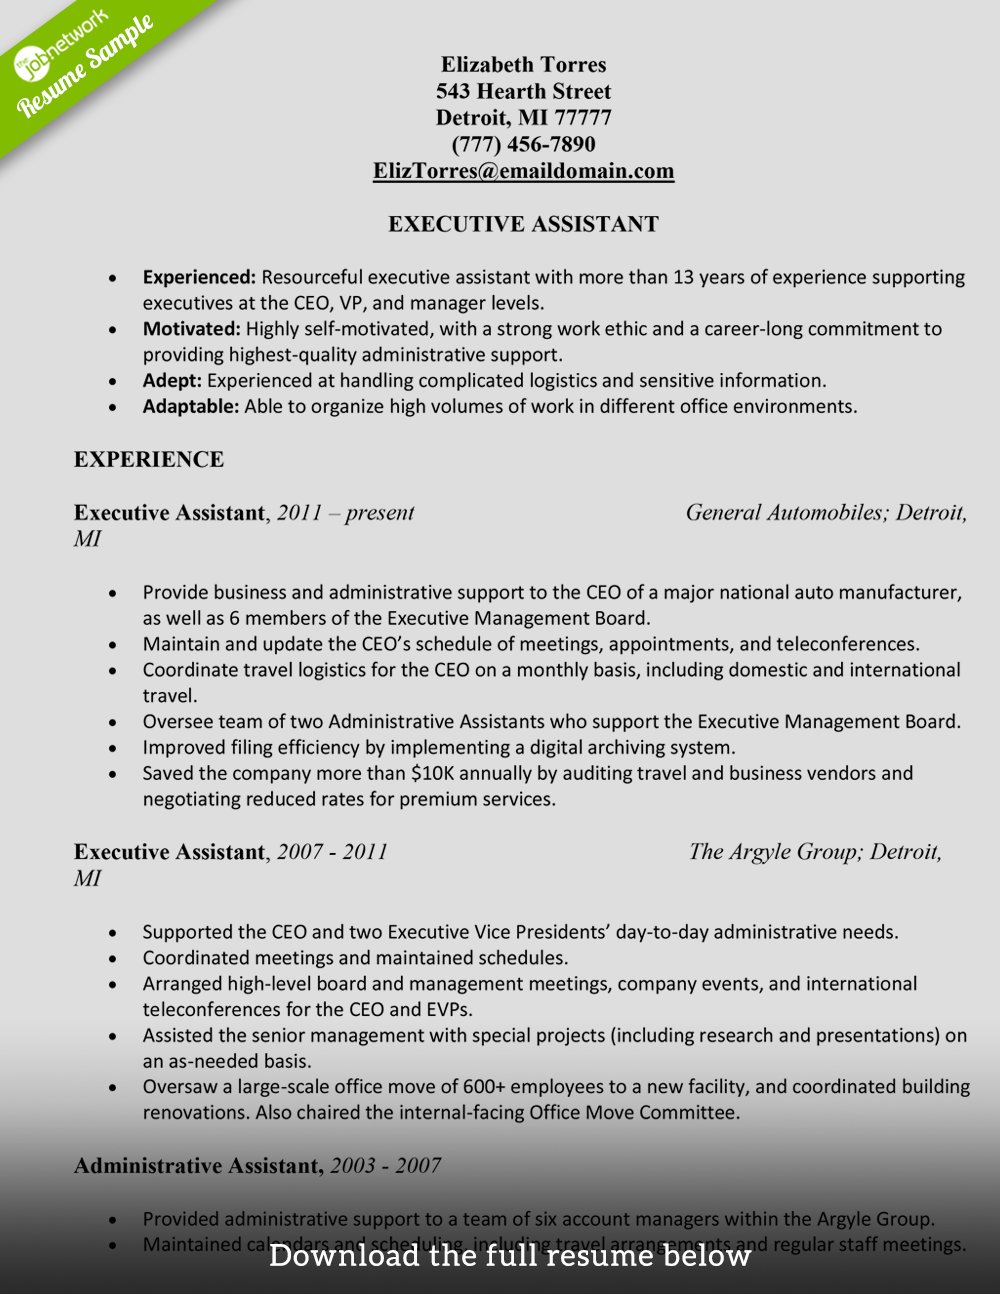 administrative assistant resume elizabeth torres - Administrative Support Resume Samples